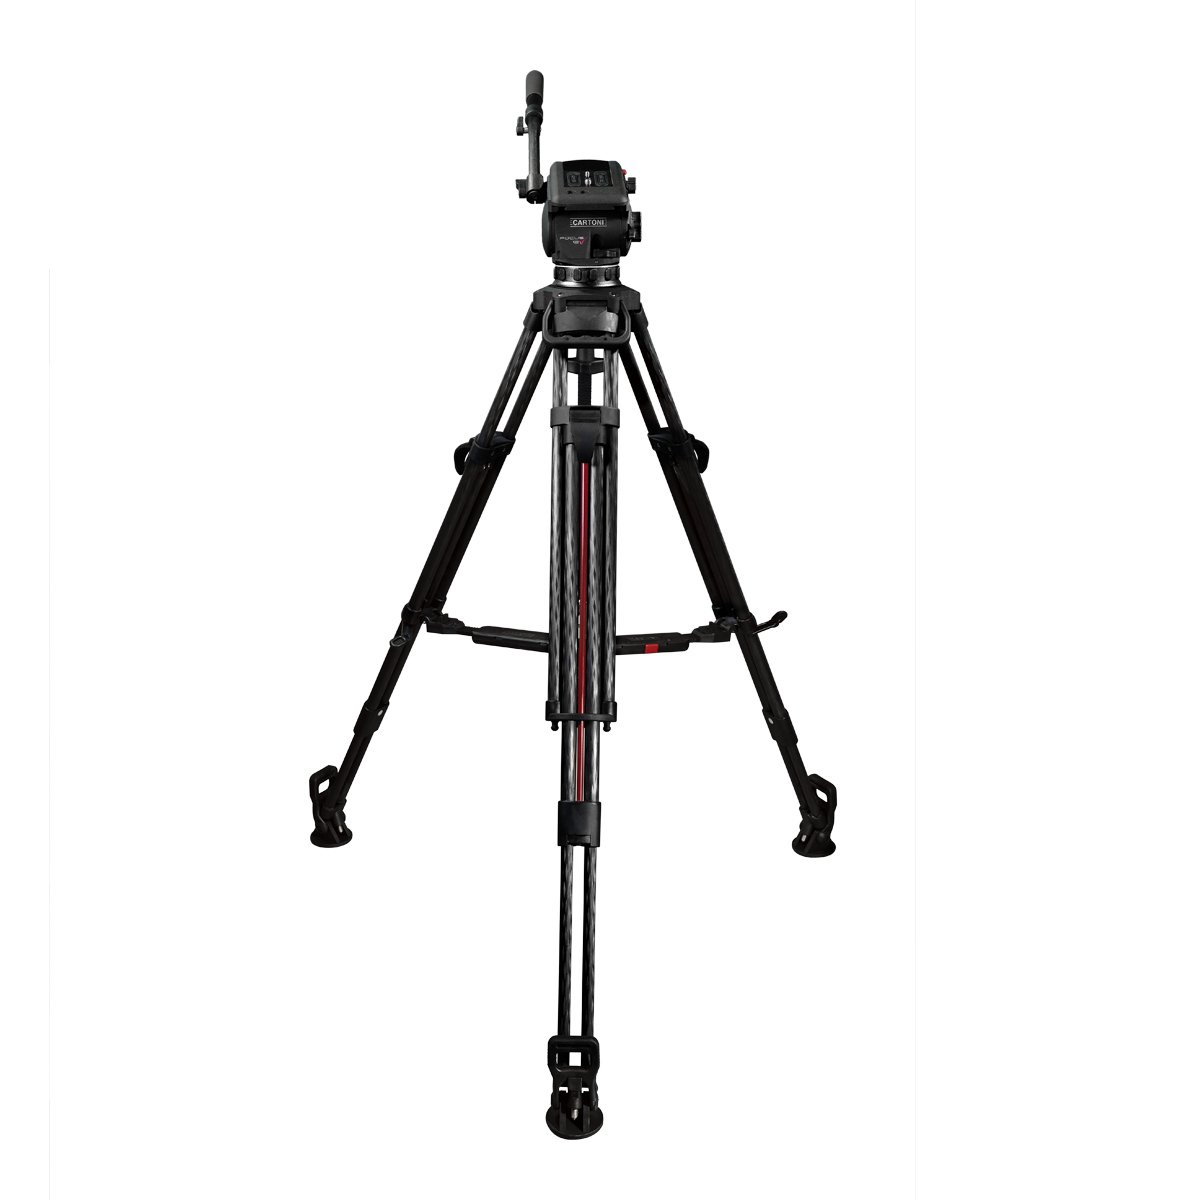 Focus 22, 2-Stage Al 100mm Smart Stop Tripod with Mid Level Speader